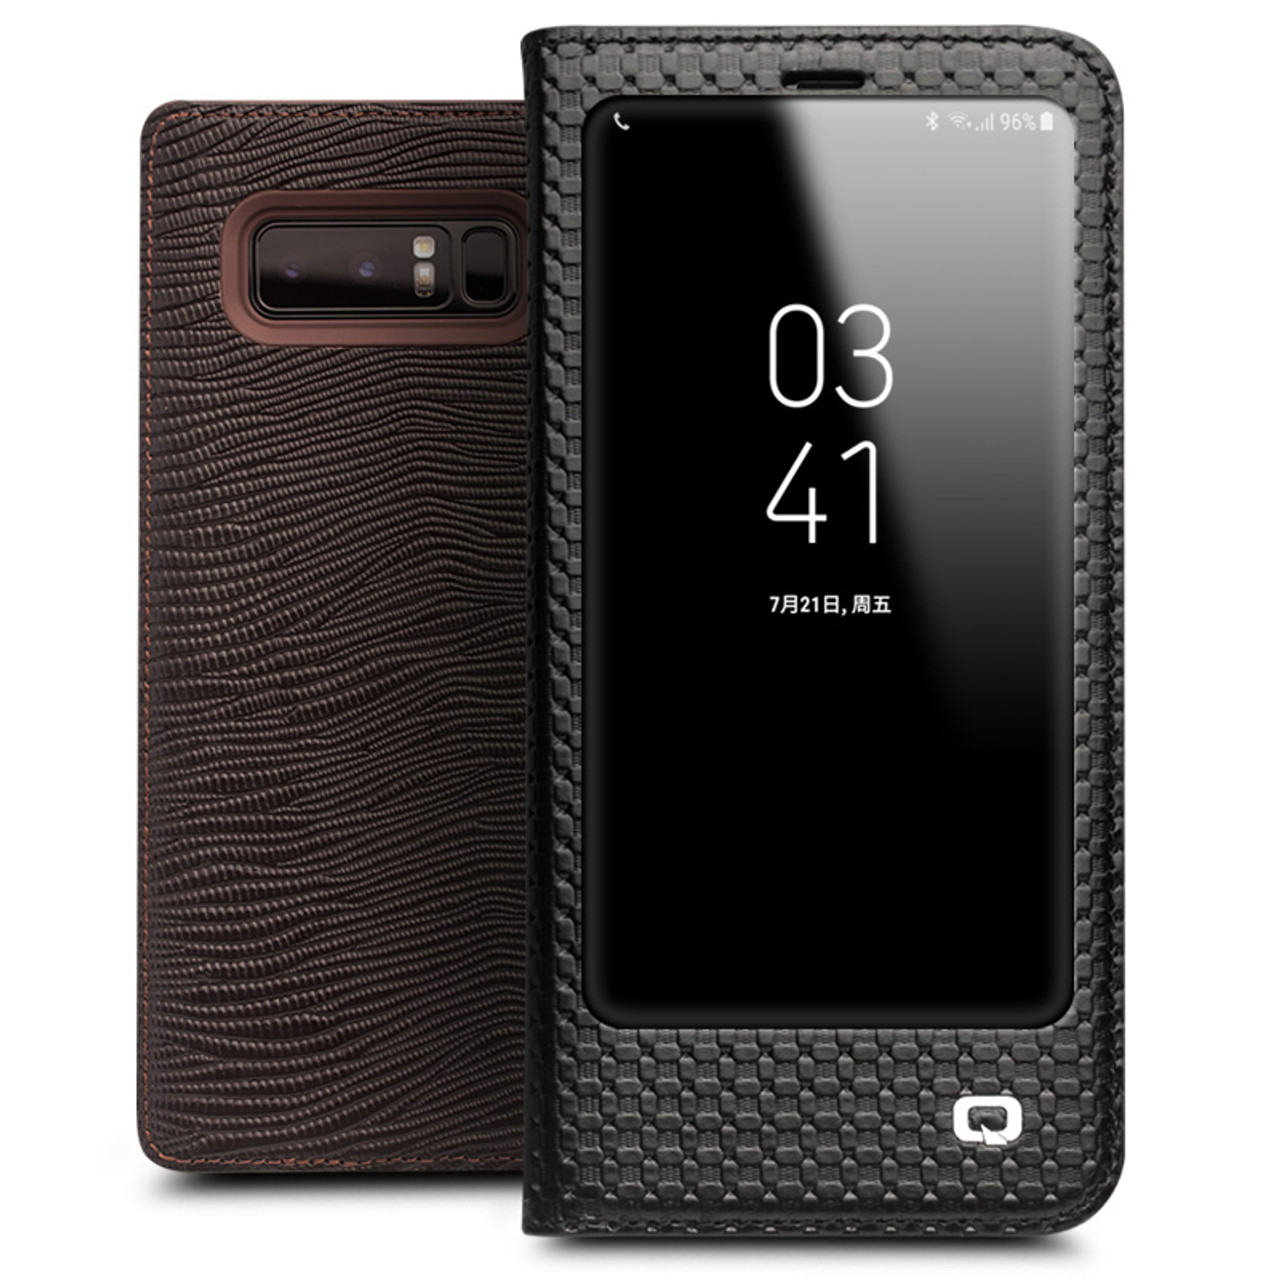 low priced f5fd1 b27c4 QIALINO for Samsung Note 8 Cases Smart View Flip Genuine Leather Window  Cover for Samsung Note 8 Case Sleep Wake Up Function